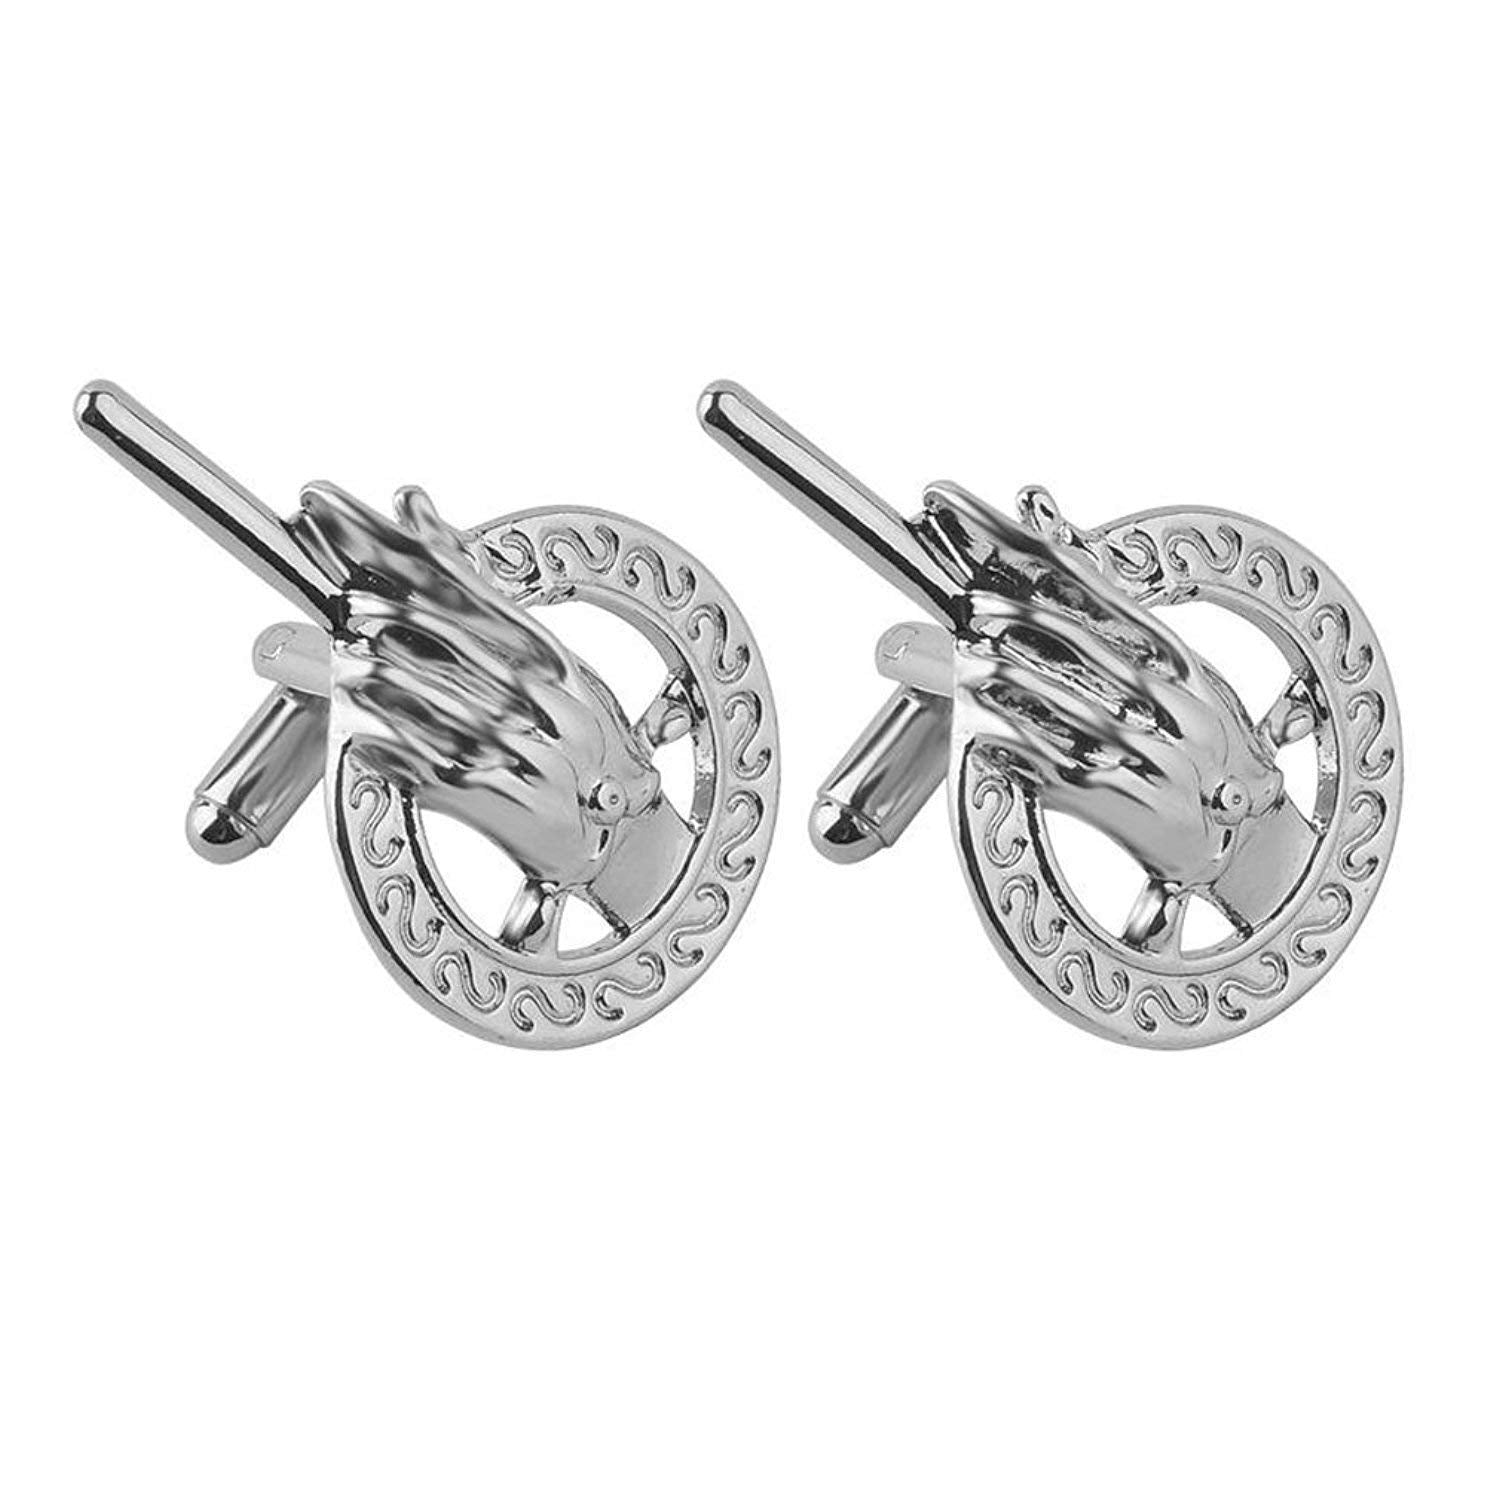 Game of Thrones Hand of The King Cufflinks